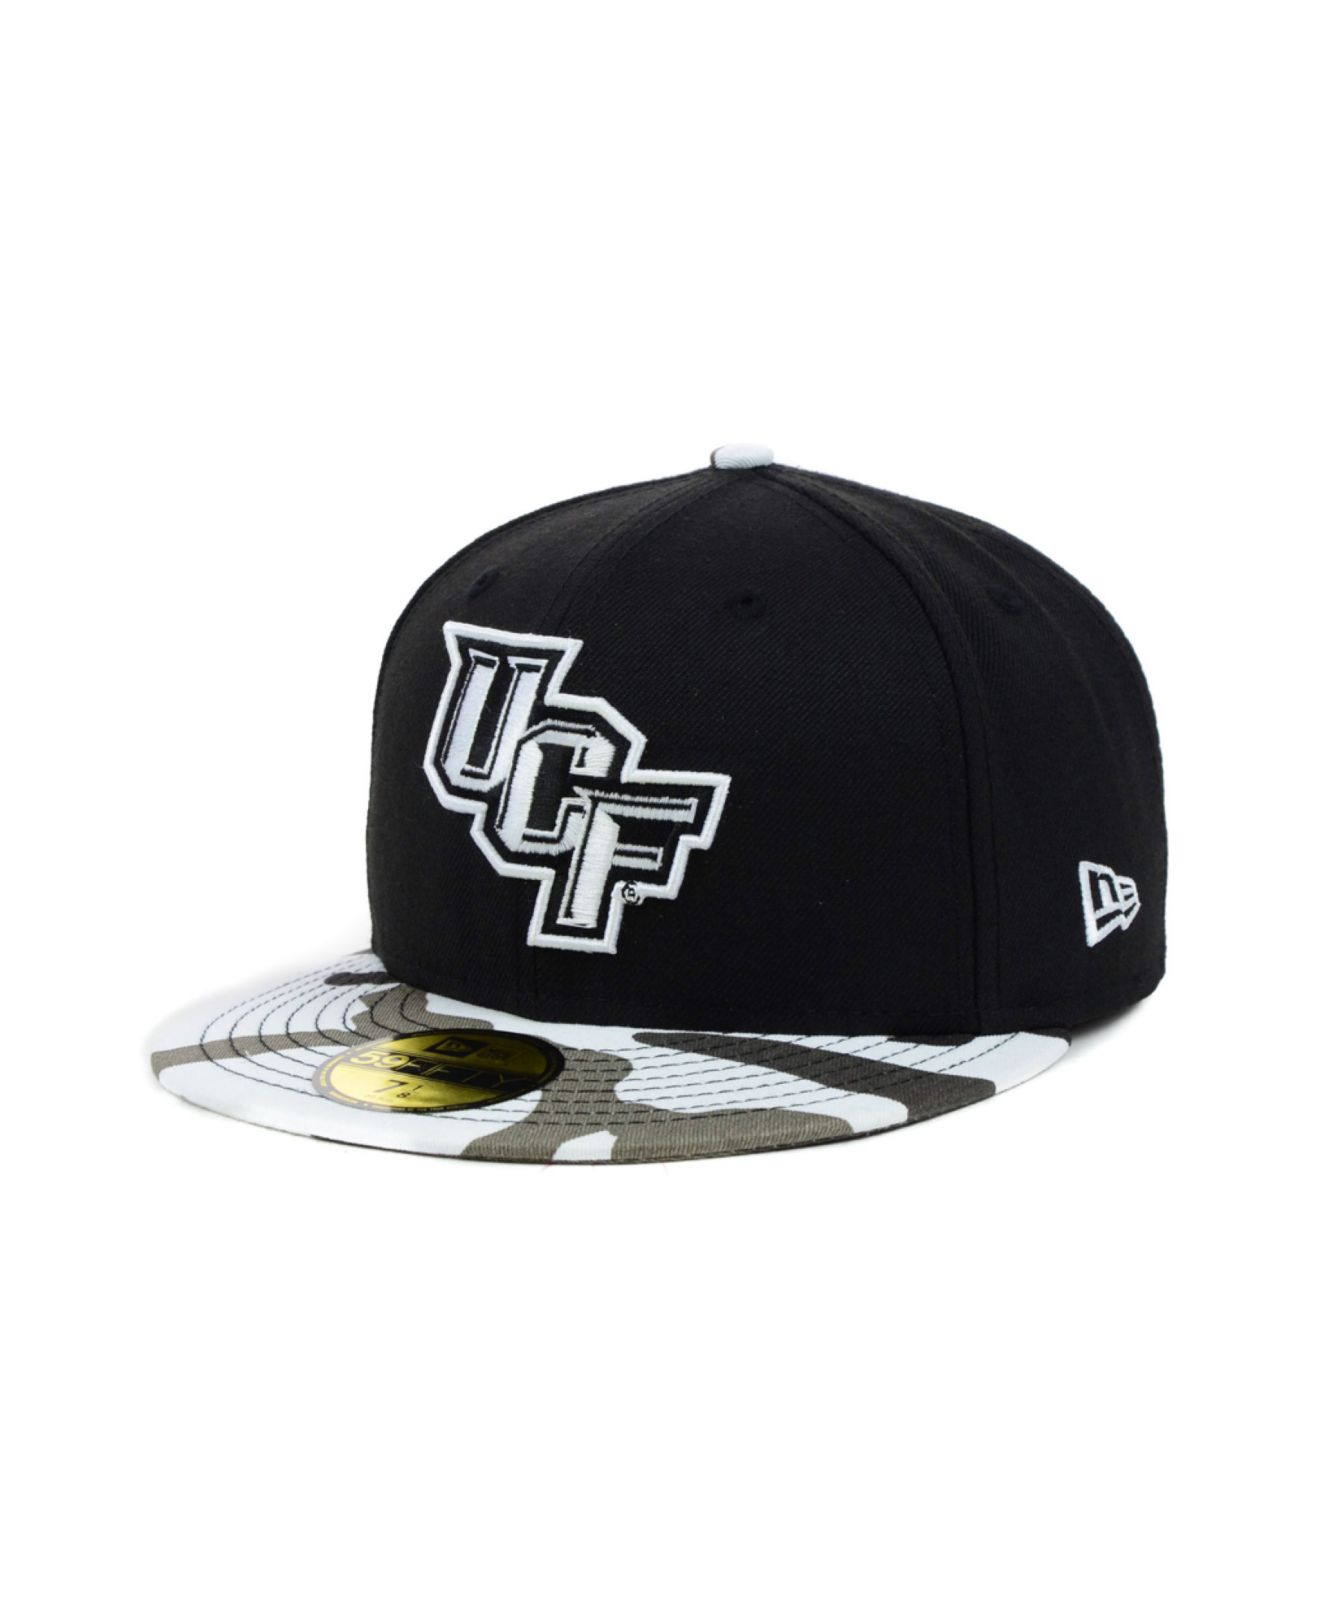 9e534a8729d Lyst - KTZ Ucf Knights Urban Camo 59Fifty Cap in Black for Men